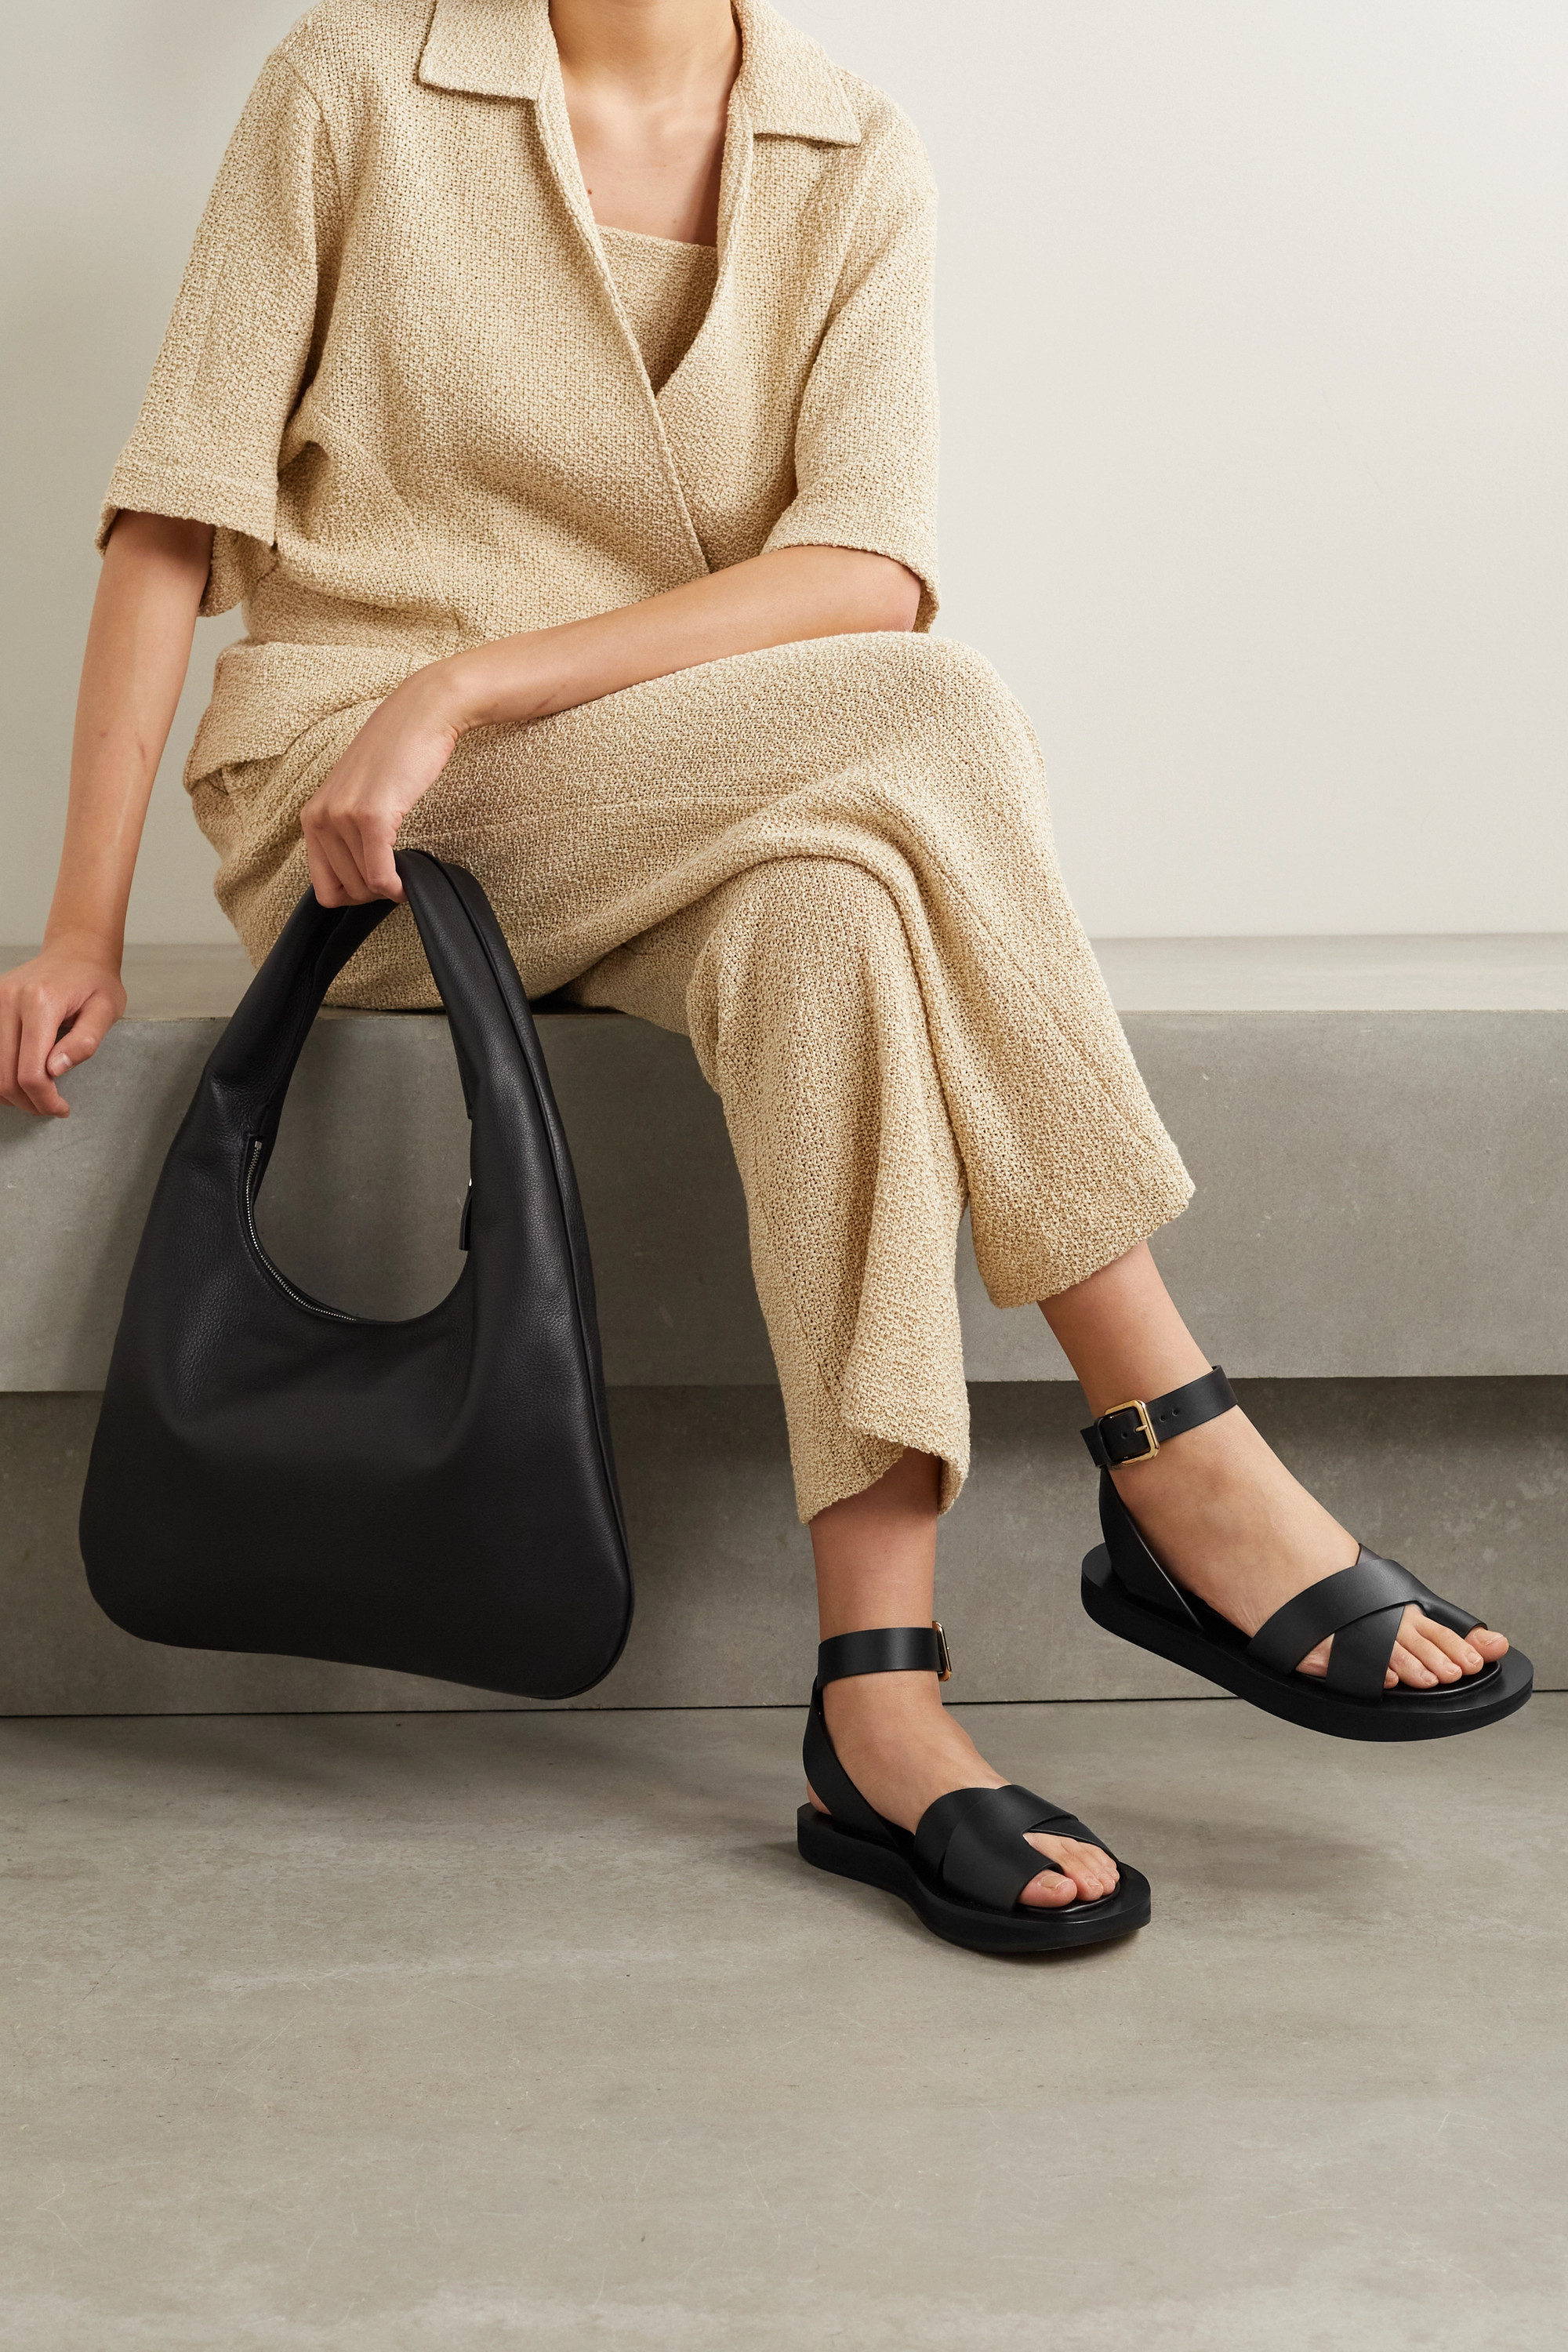 Co Leather sandals